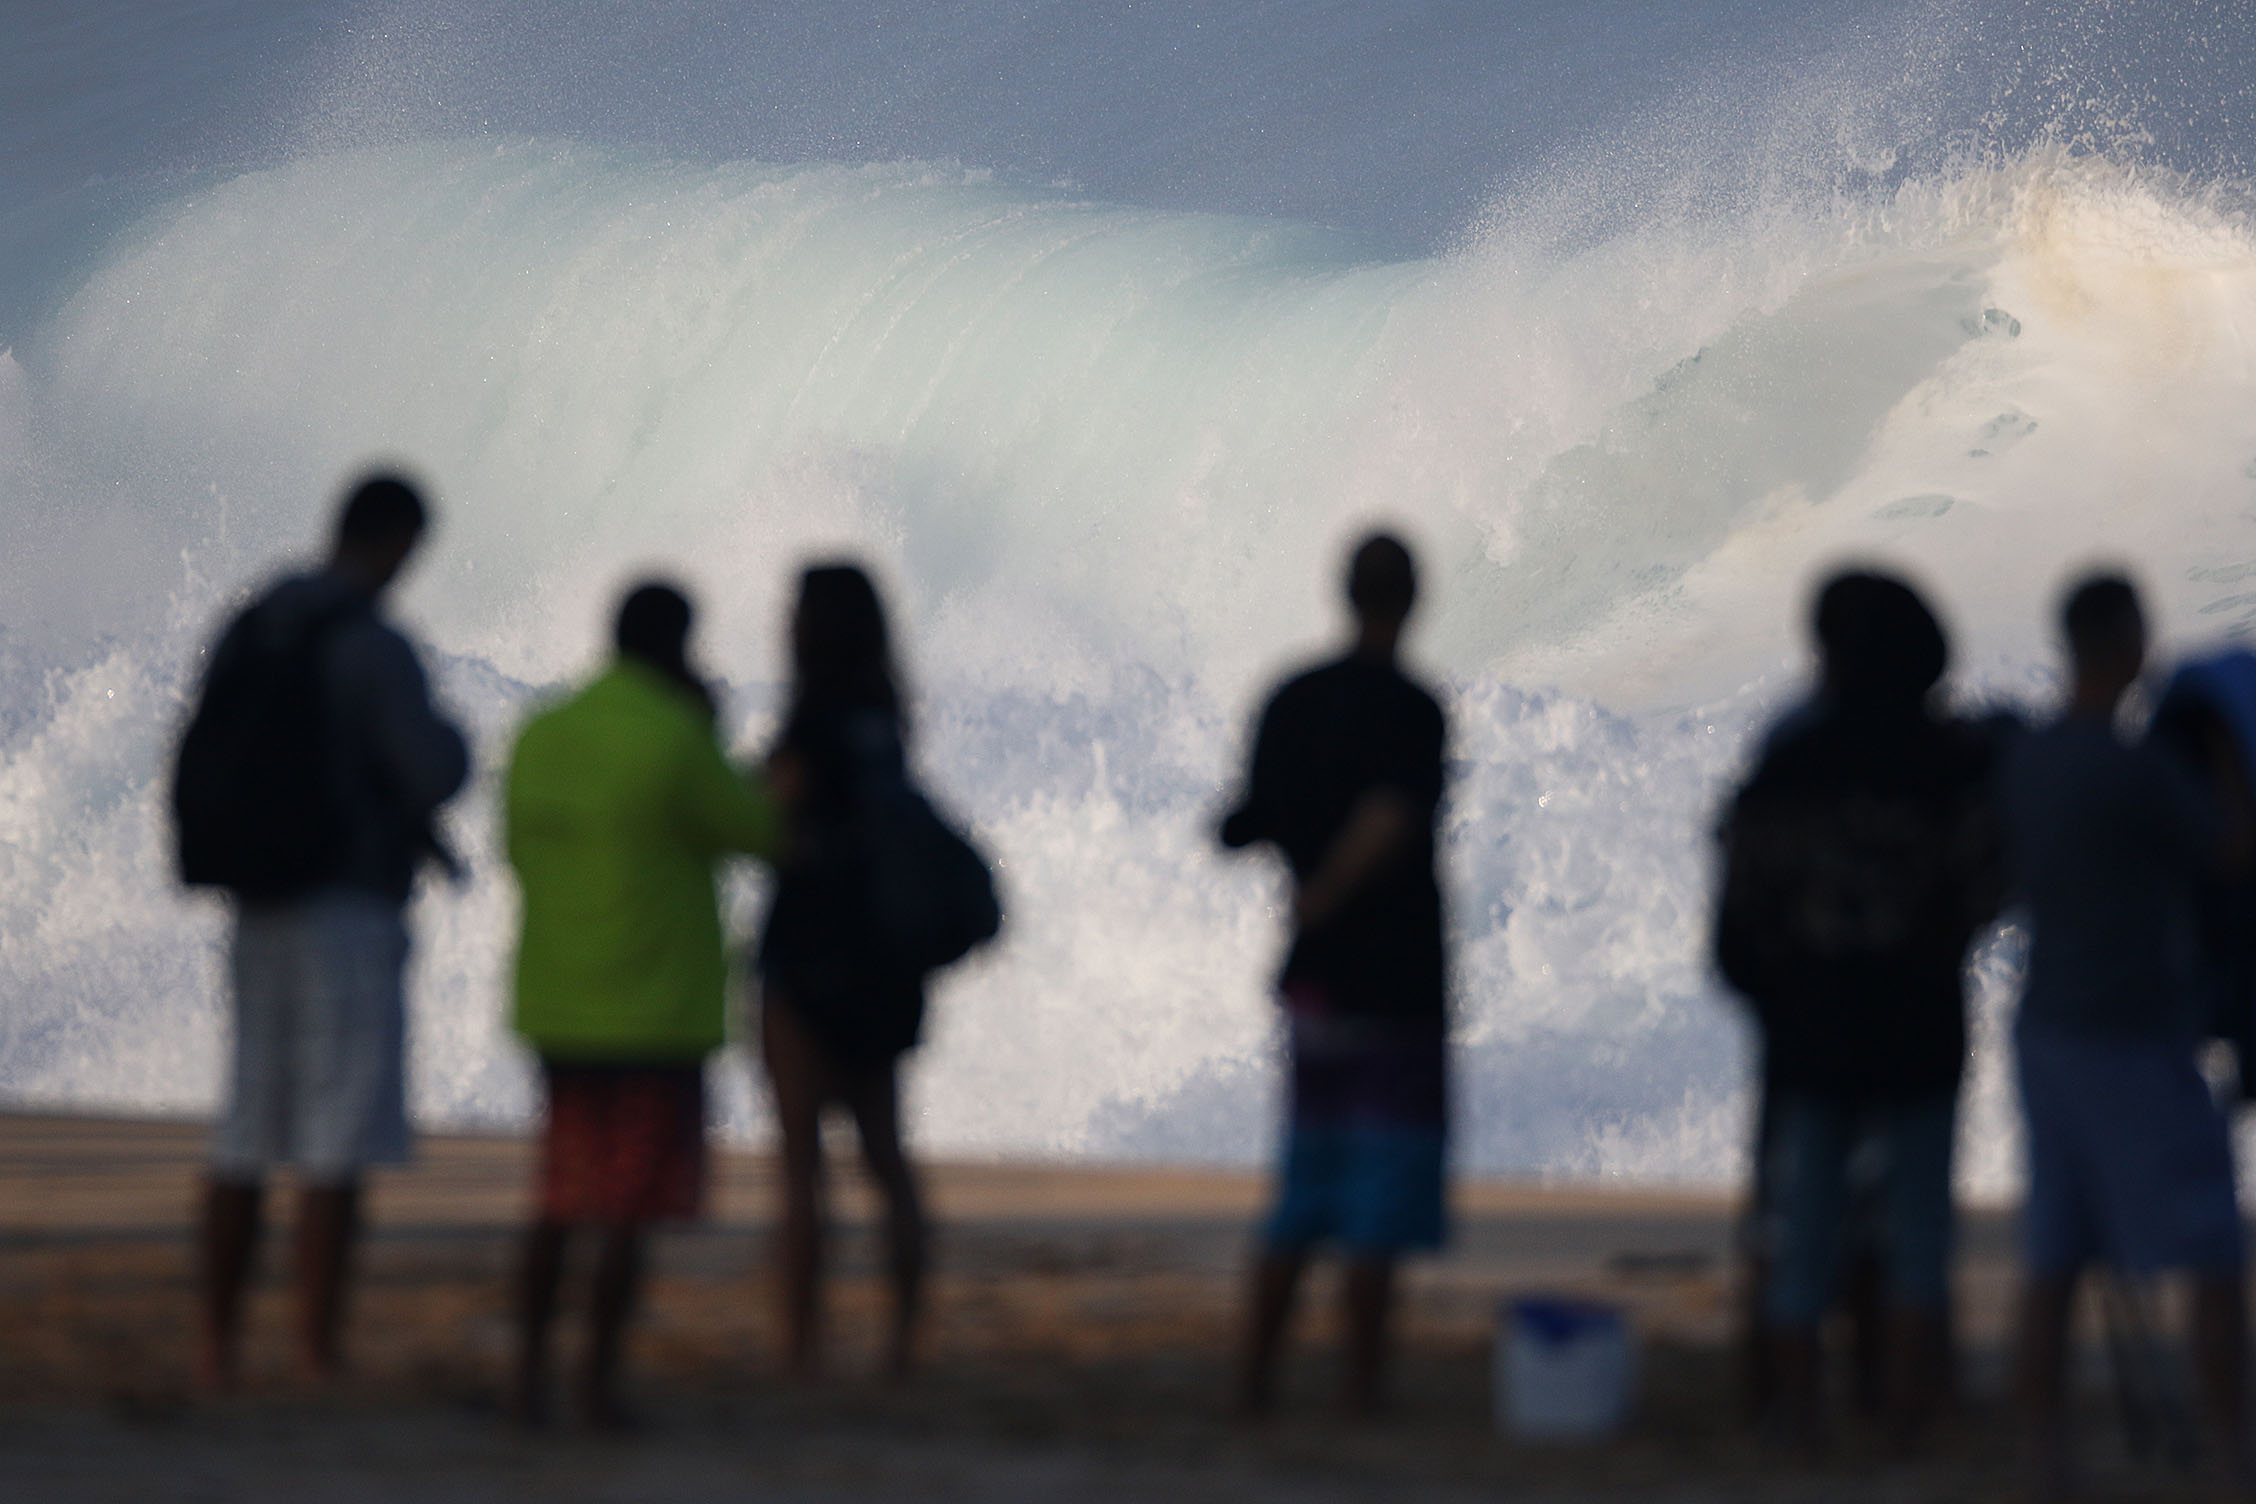 <p>Beachgoers watch the large surf at the Banzai Pipeline. Winter waves are sometimes so epic you'd think the hazards are obvious, but lifeguards issue plenty of warnings anyway.</p>